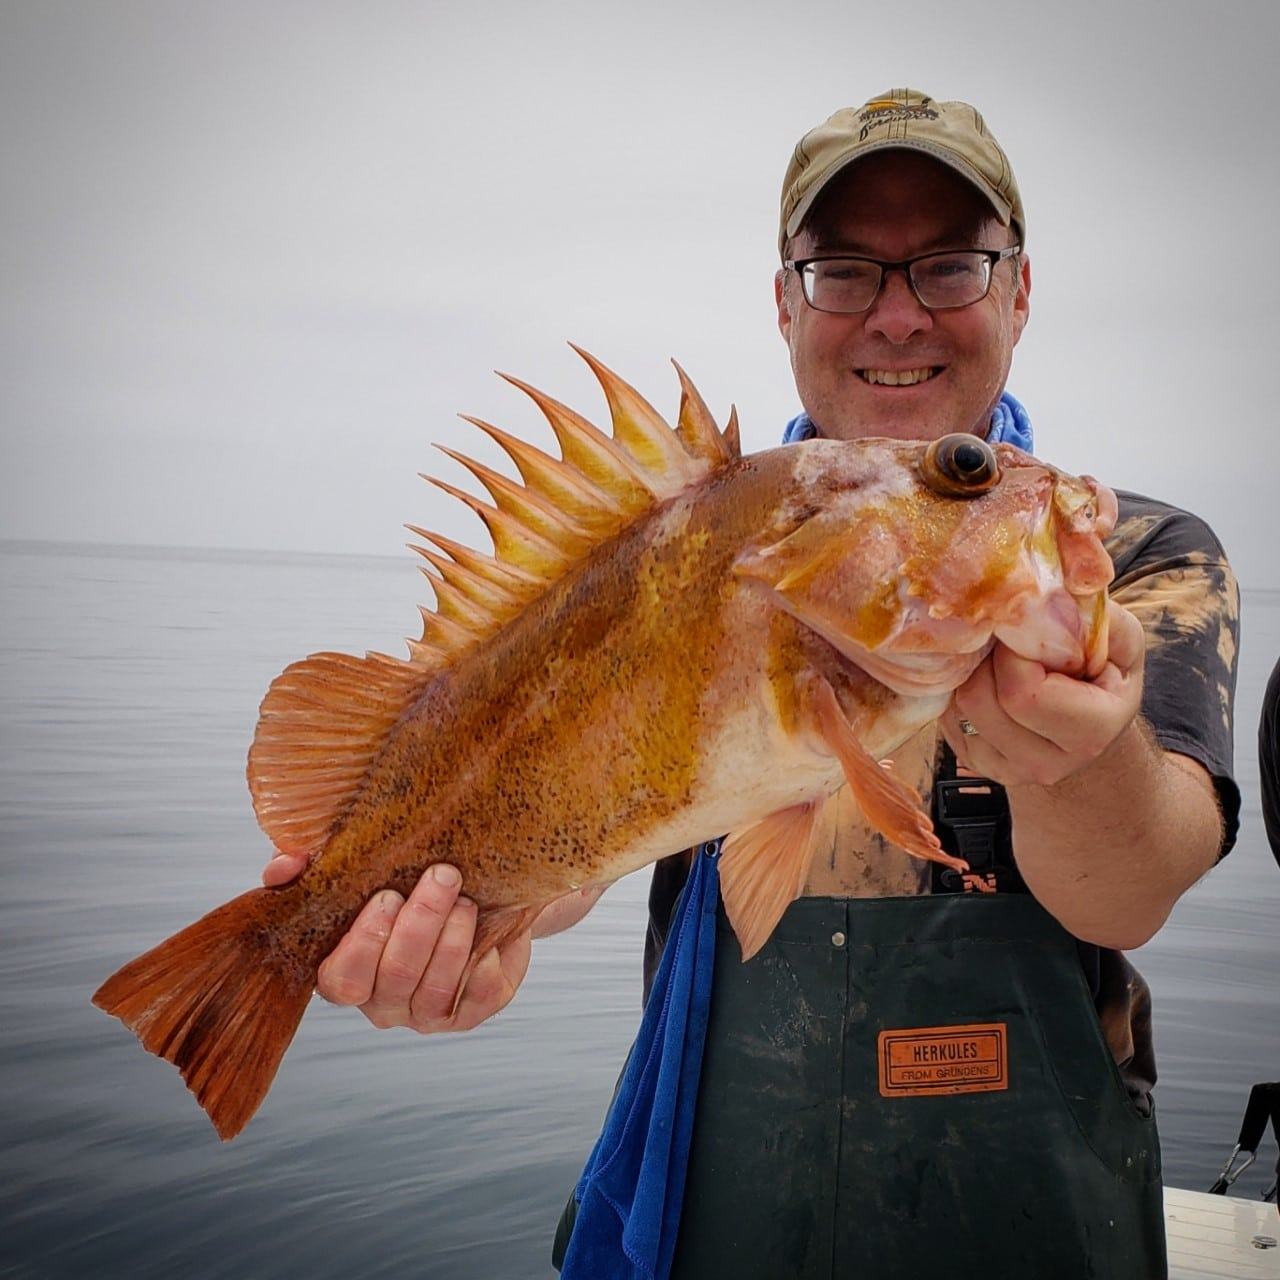 Hank with copper rockfish